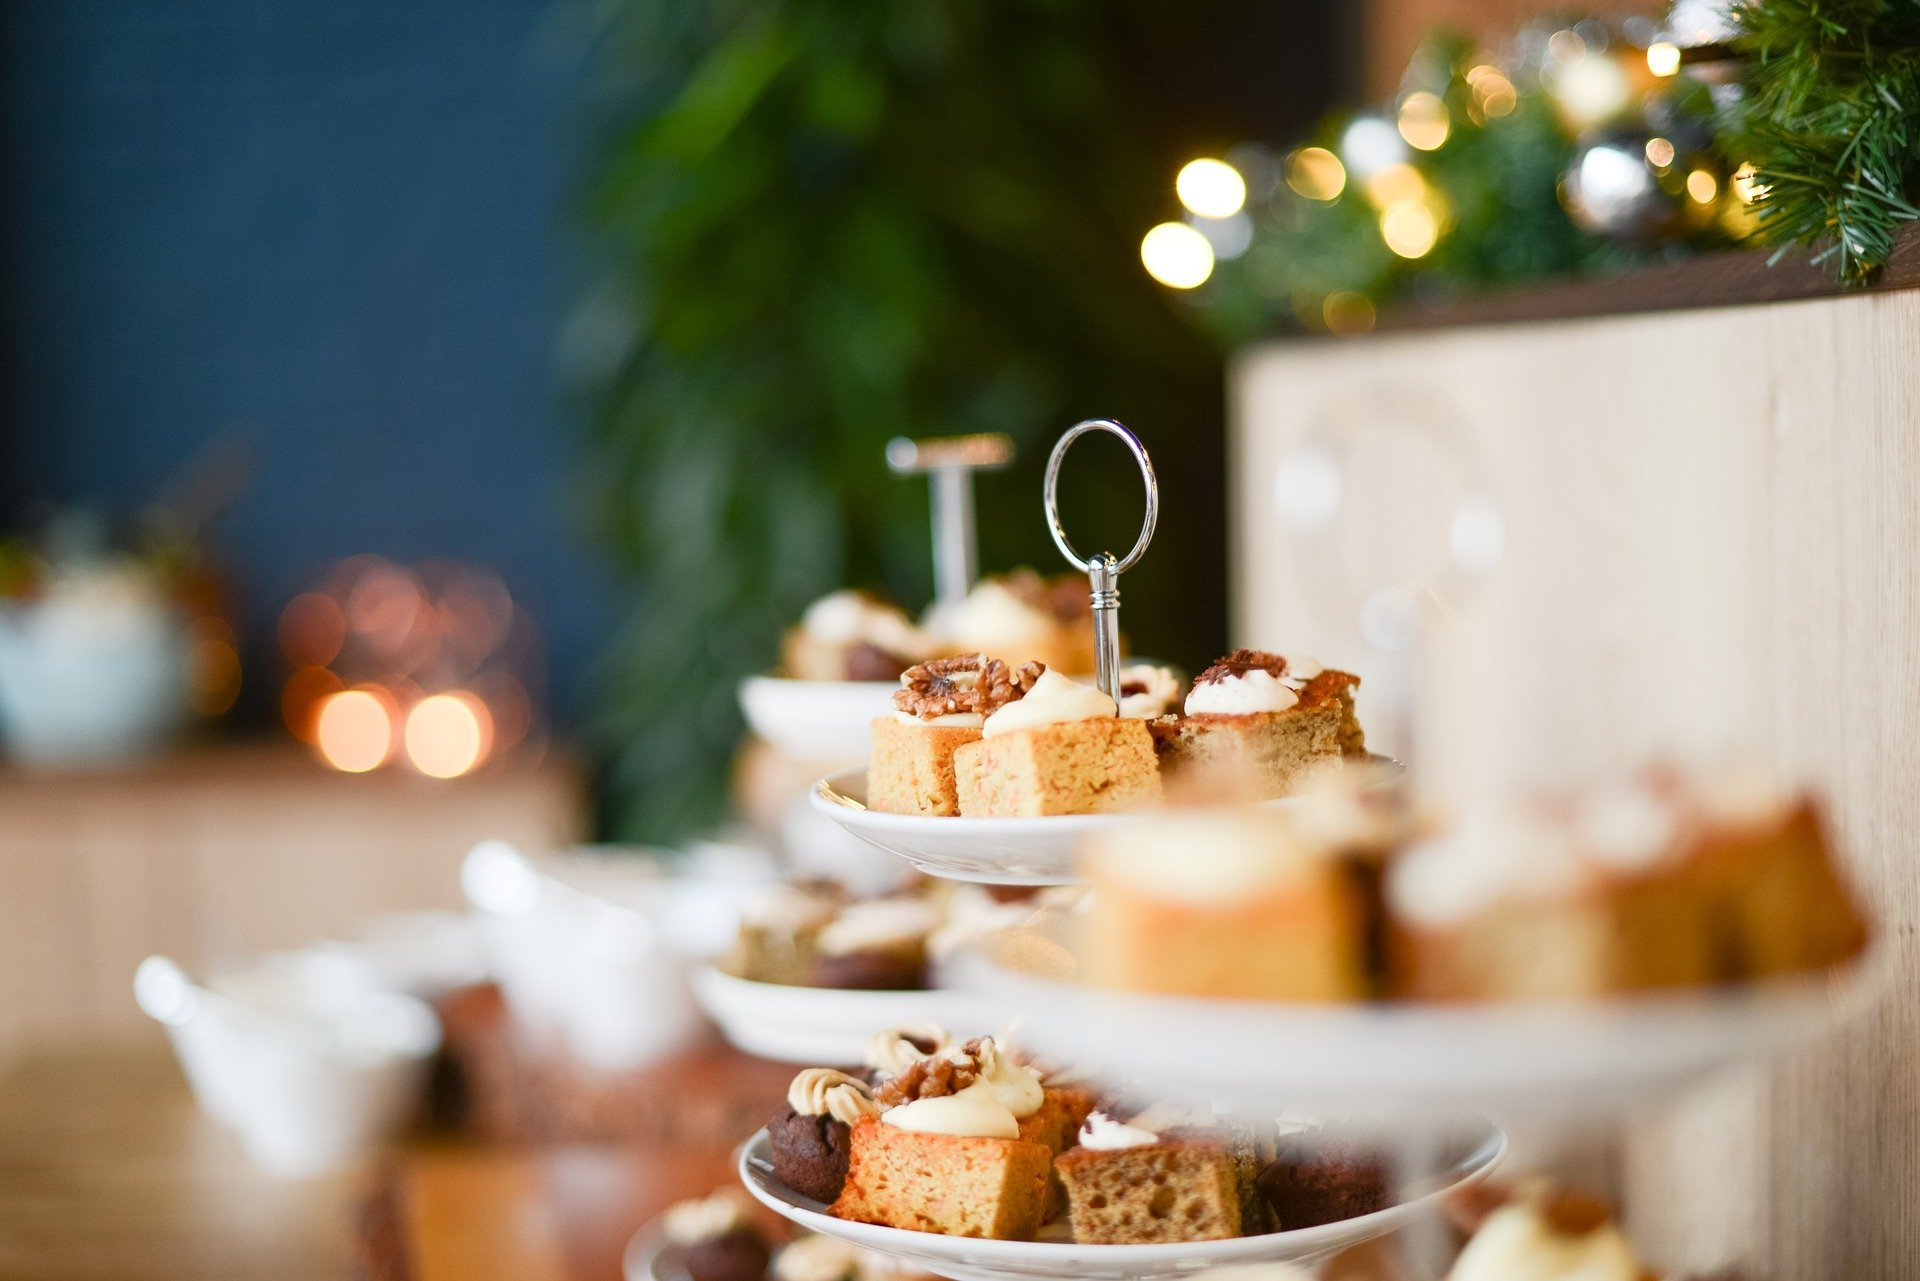 Enjoy a Festive Afternoon Tea!